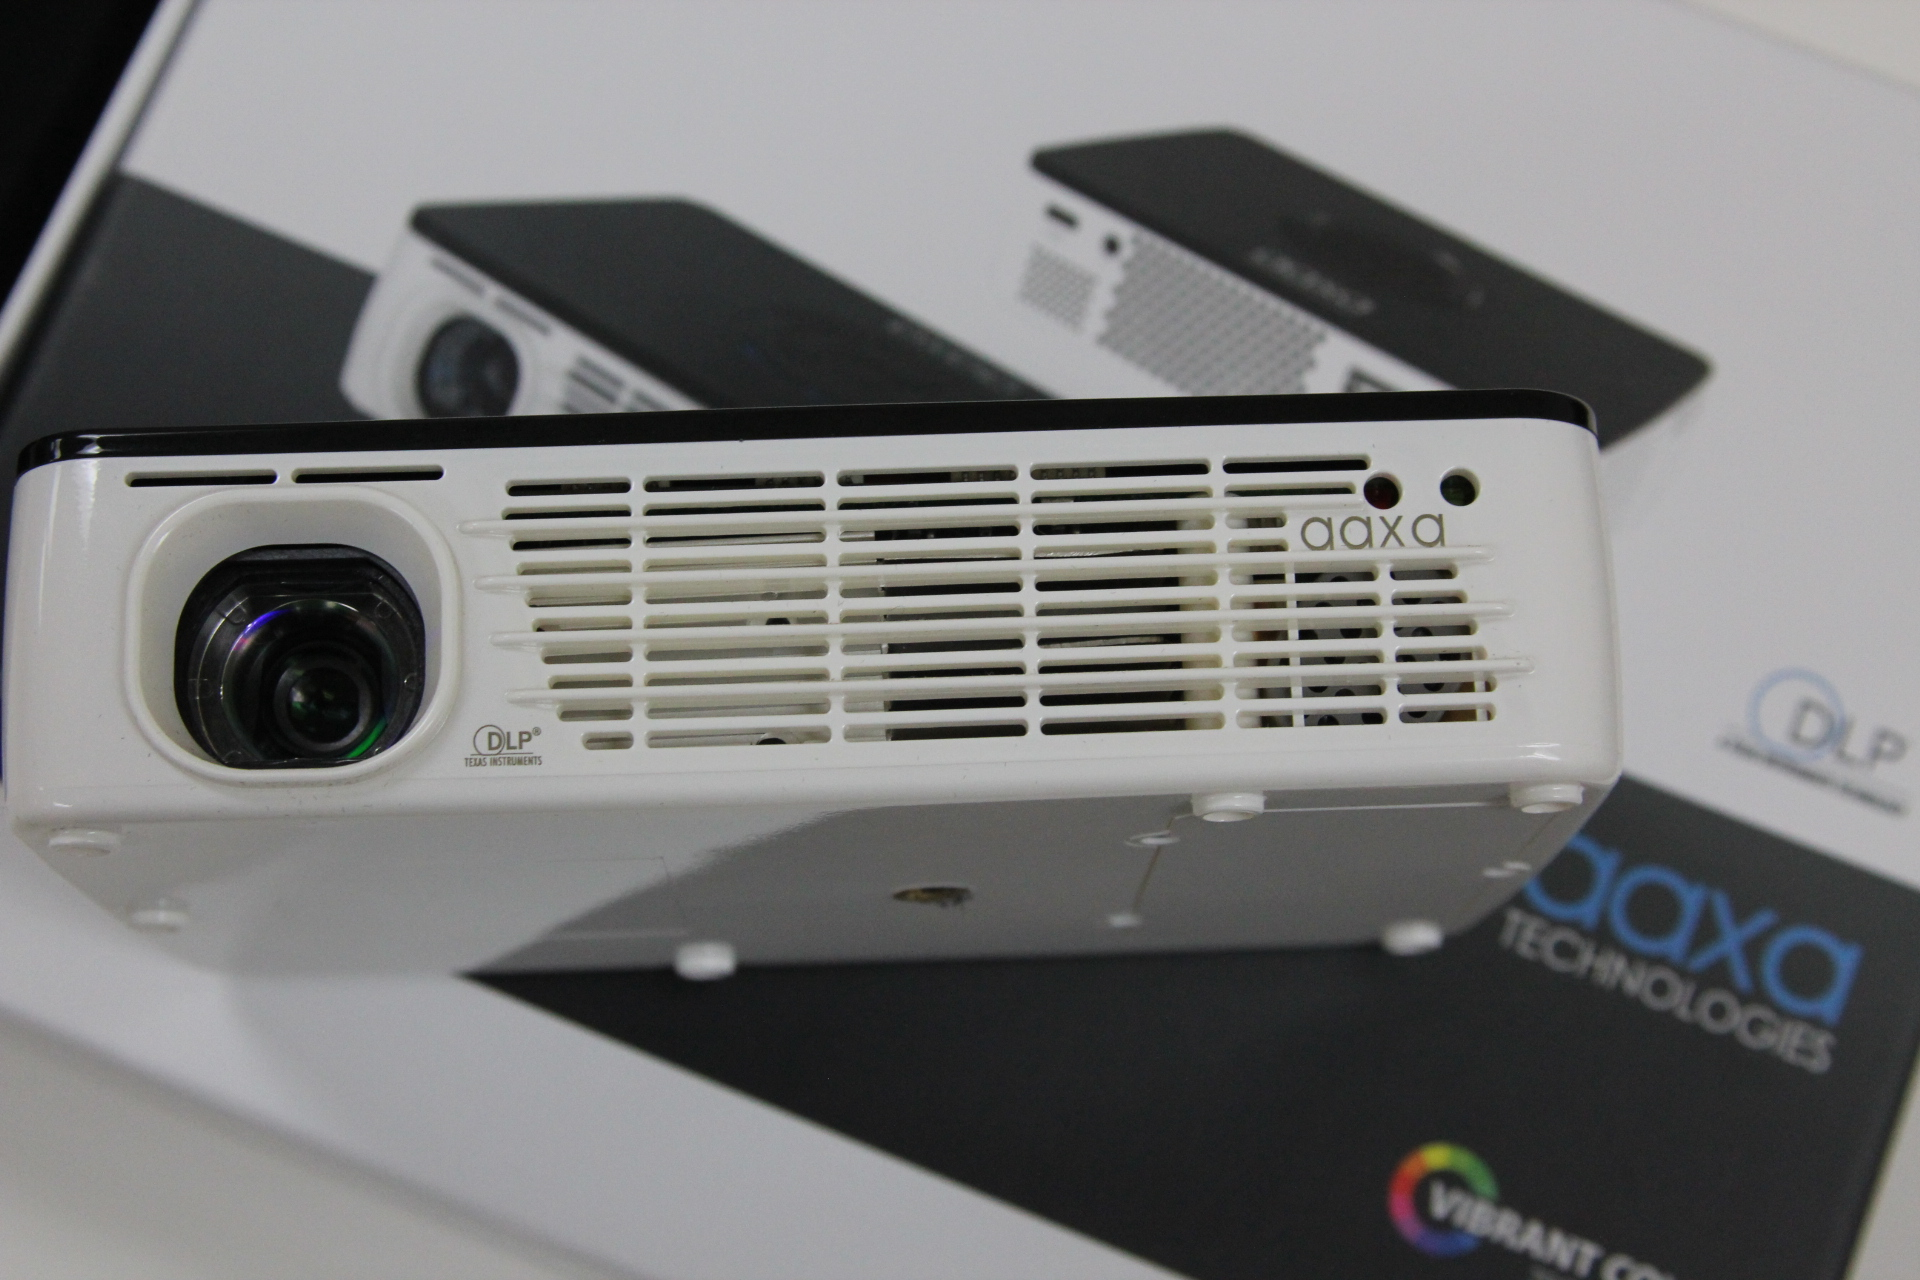 Aaxa p300 pico micro projector review pico projector fans for Micro projector reviews